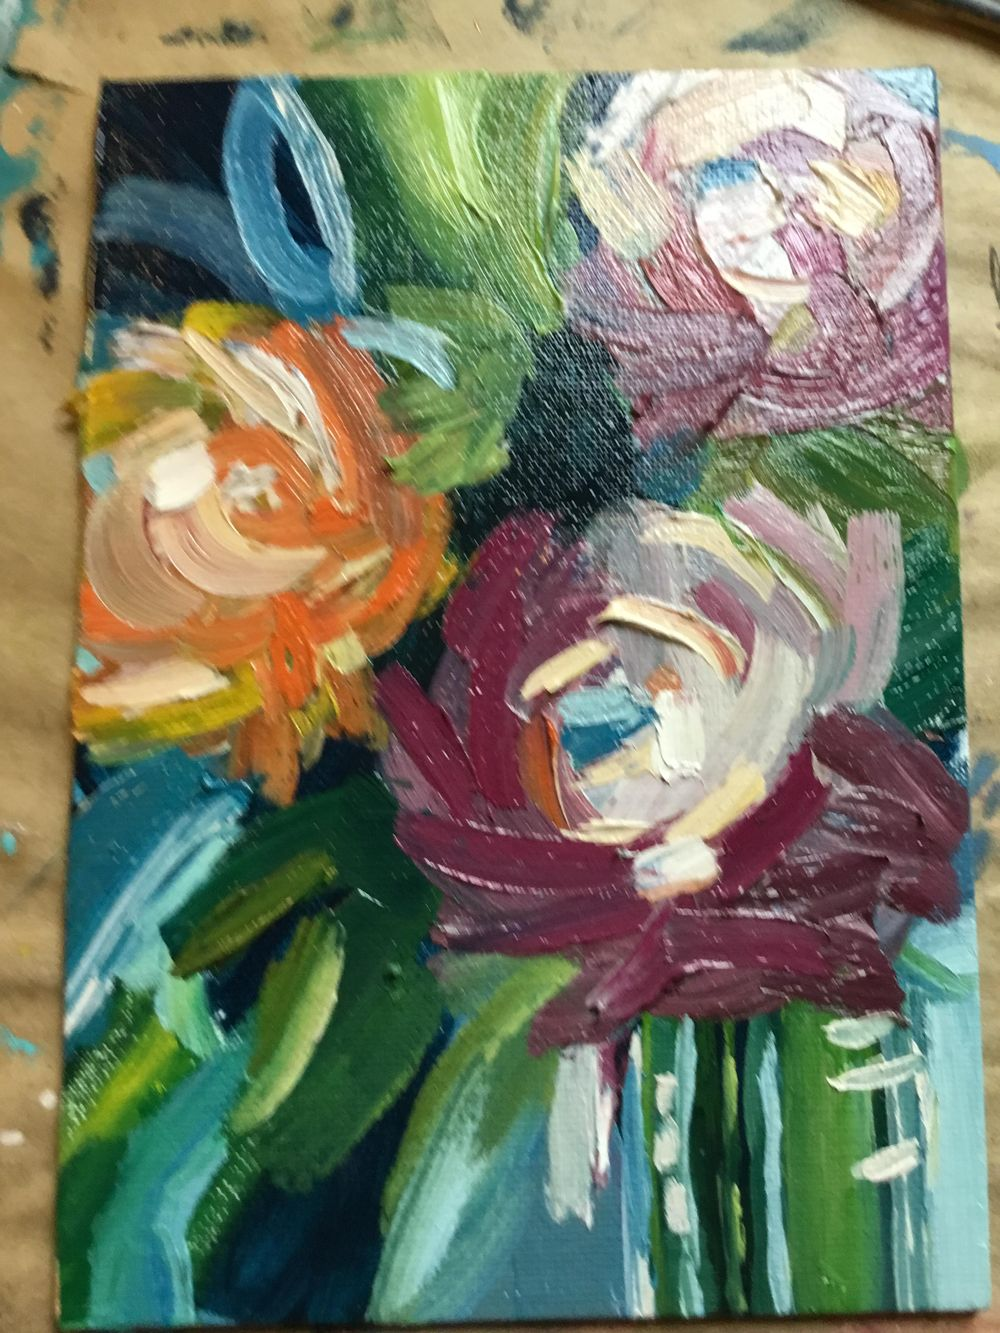 Abstract flowers - image 1 - student project